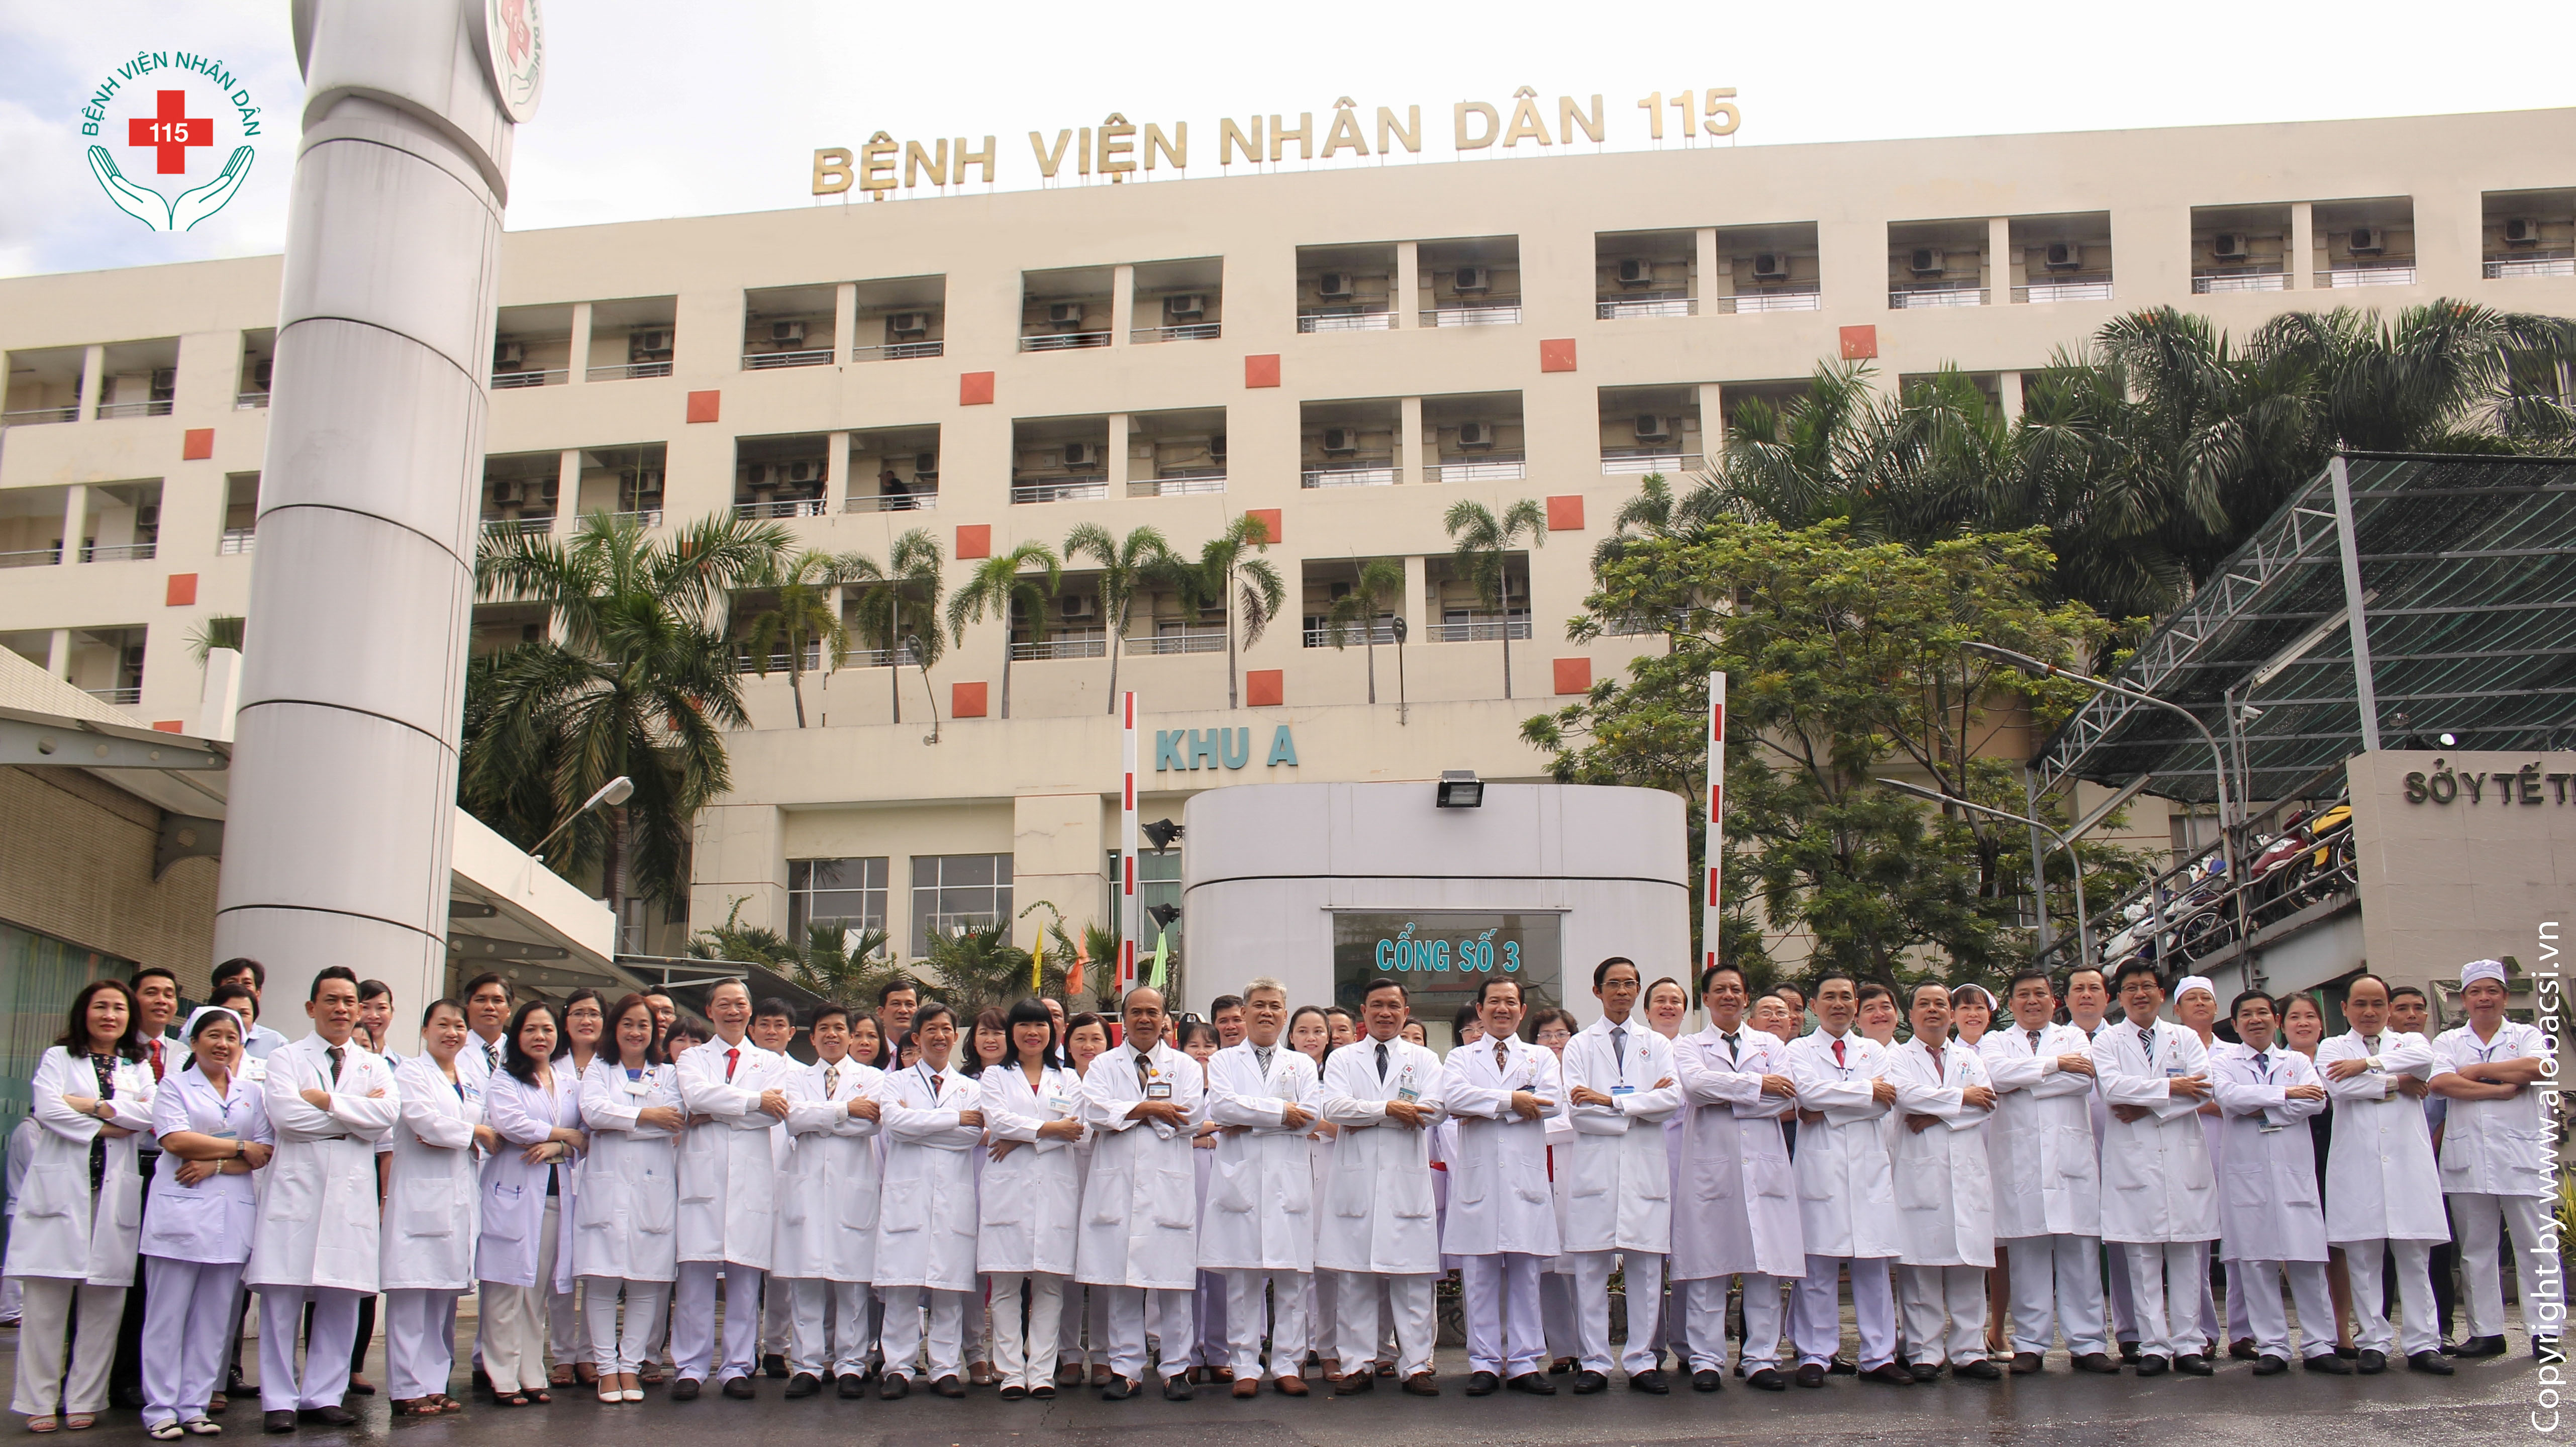 Ho Chi Minh city's hospital quality assessment results announced